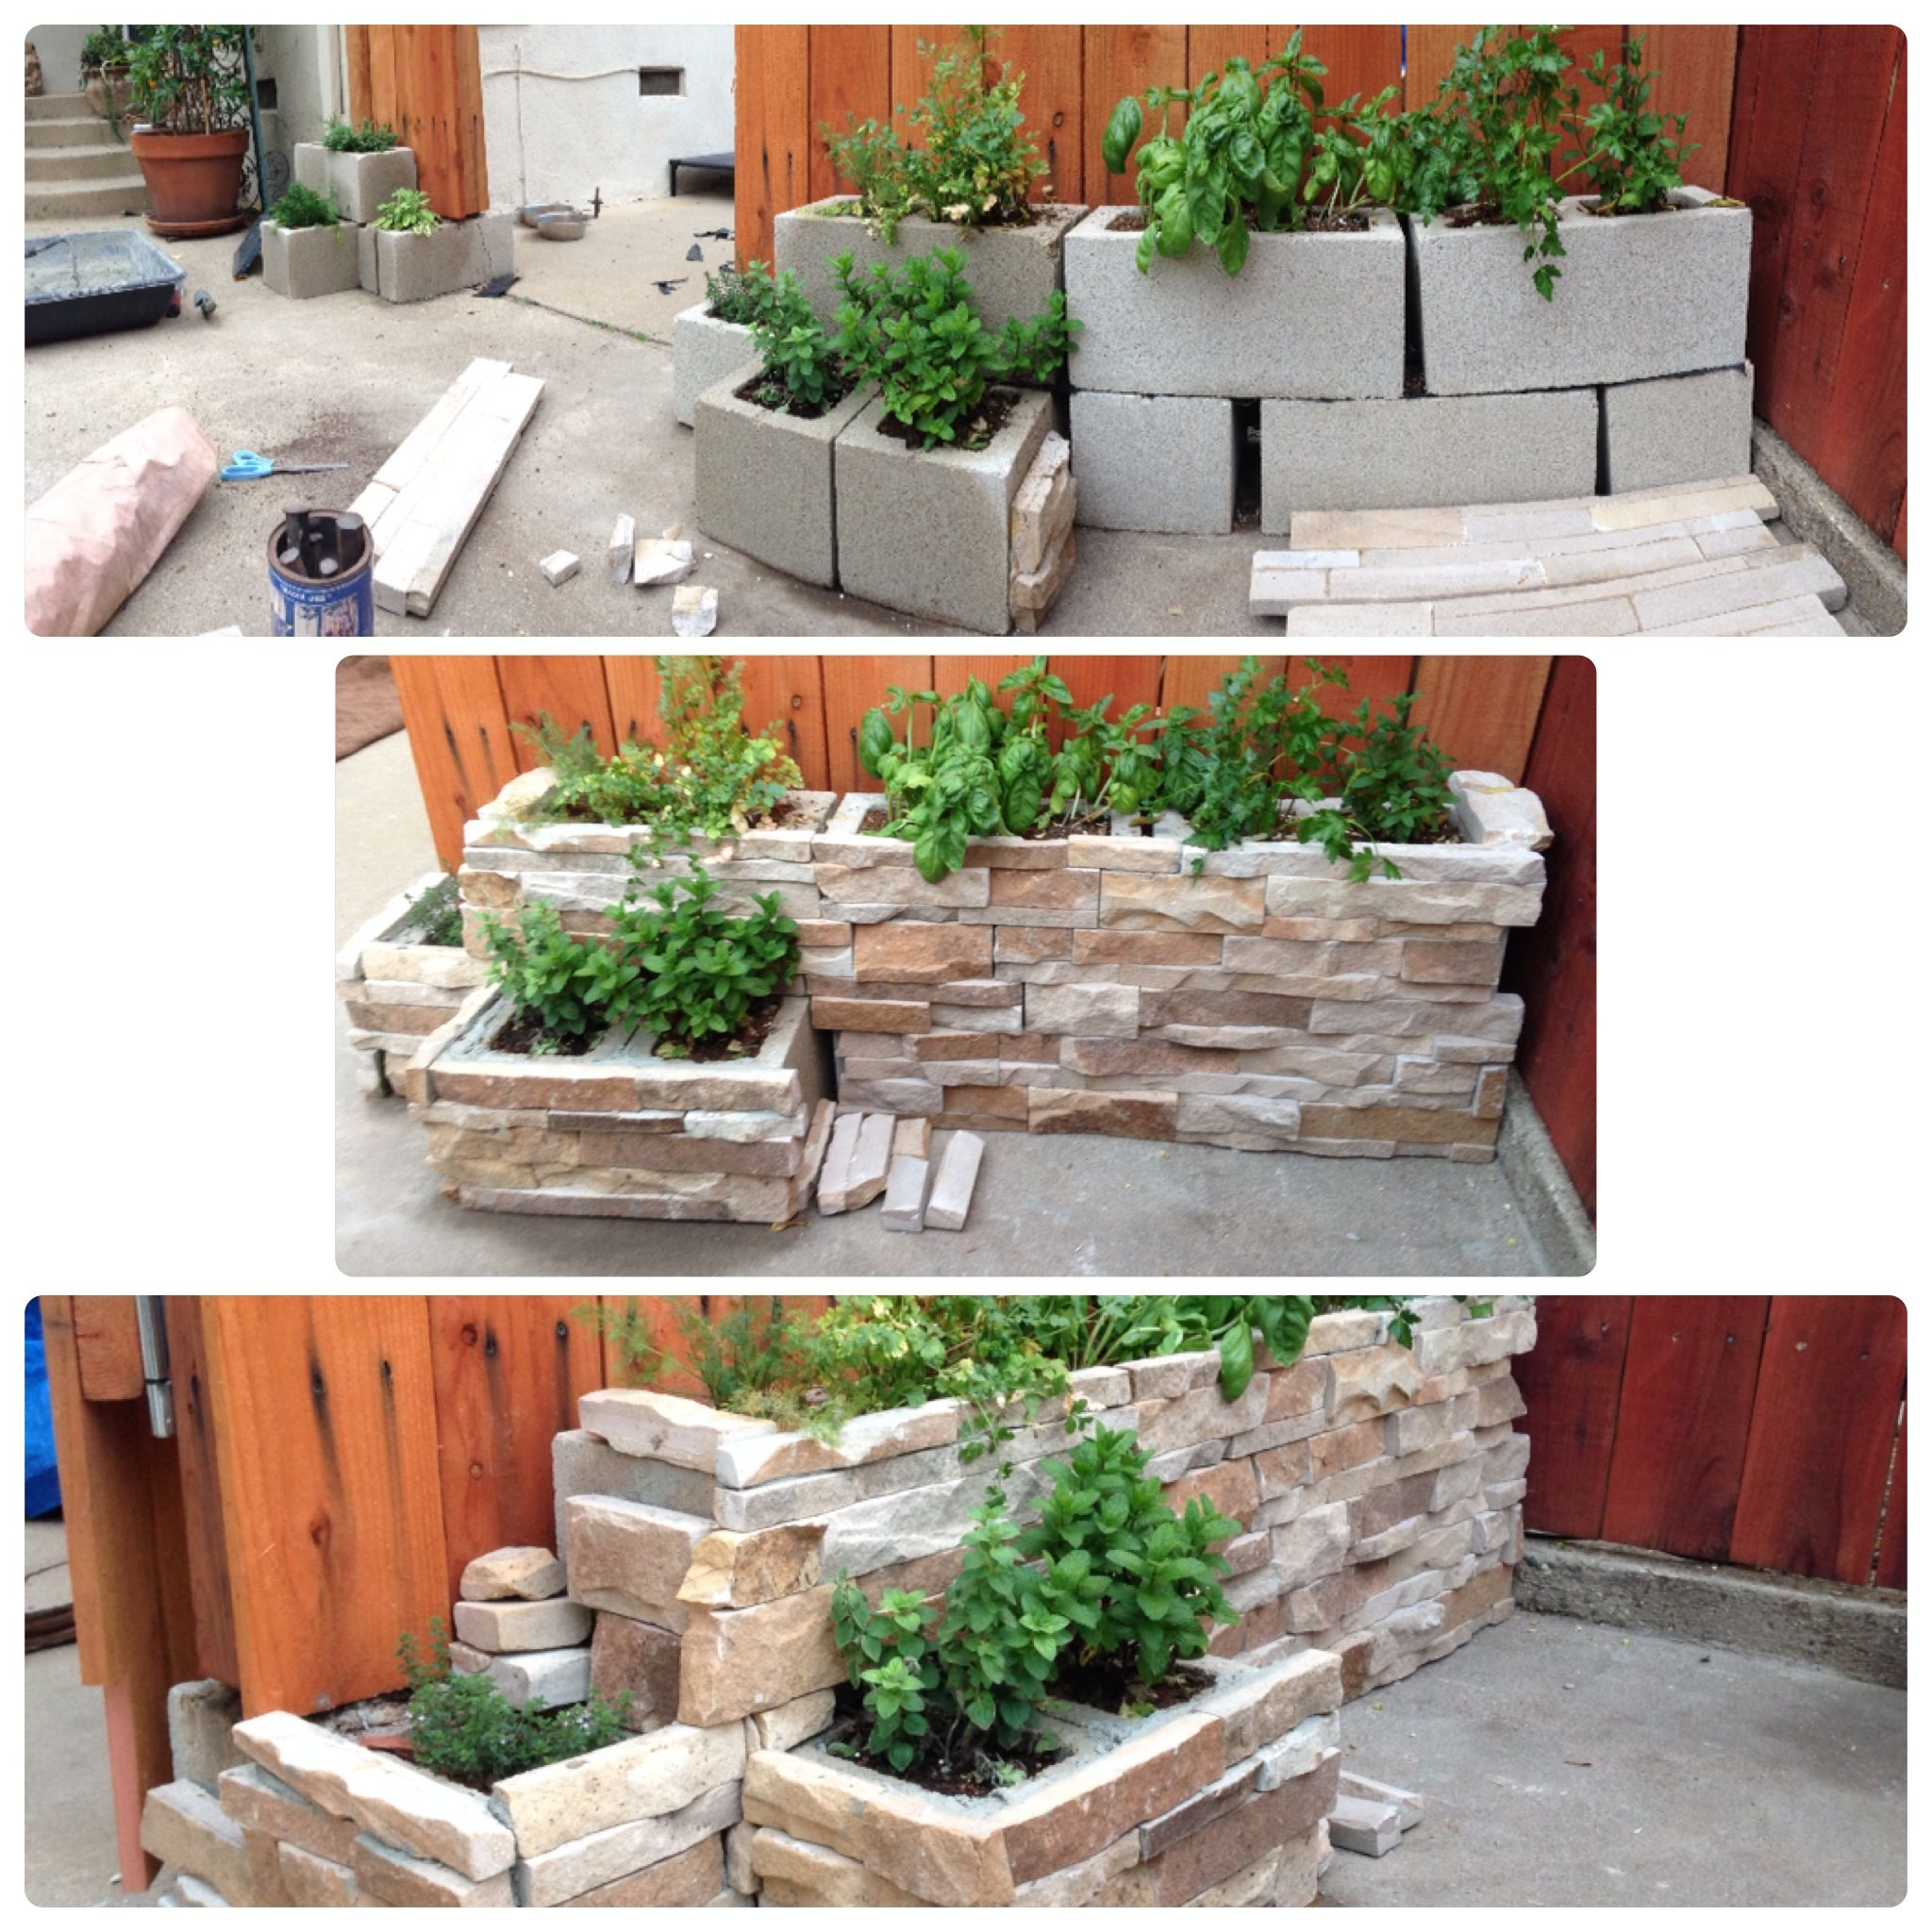 Small Herb Garden Made With Cinder Blocks And Rock Facing